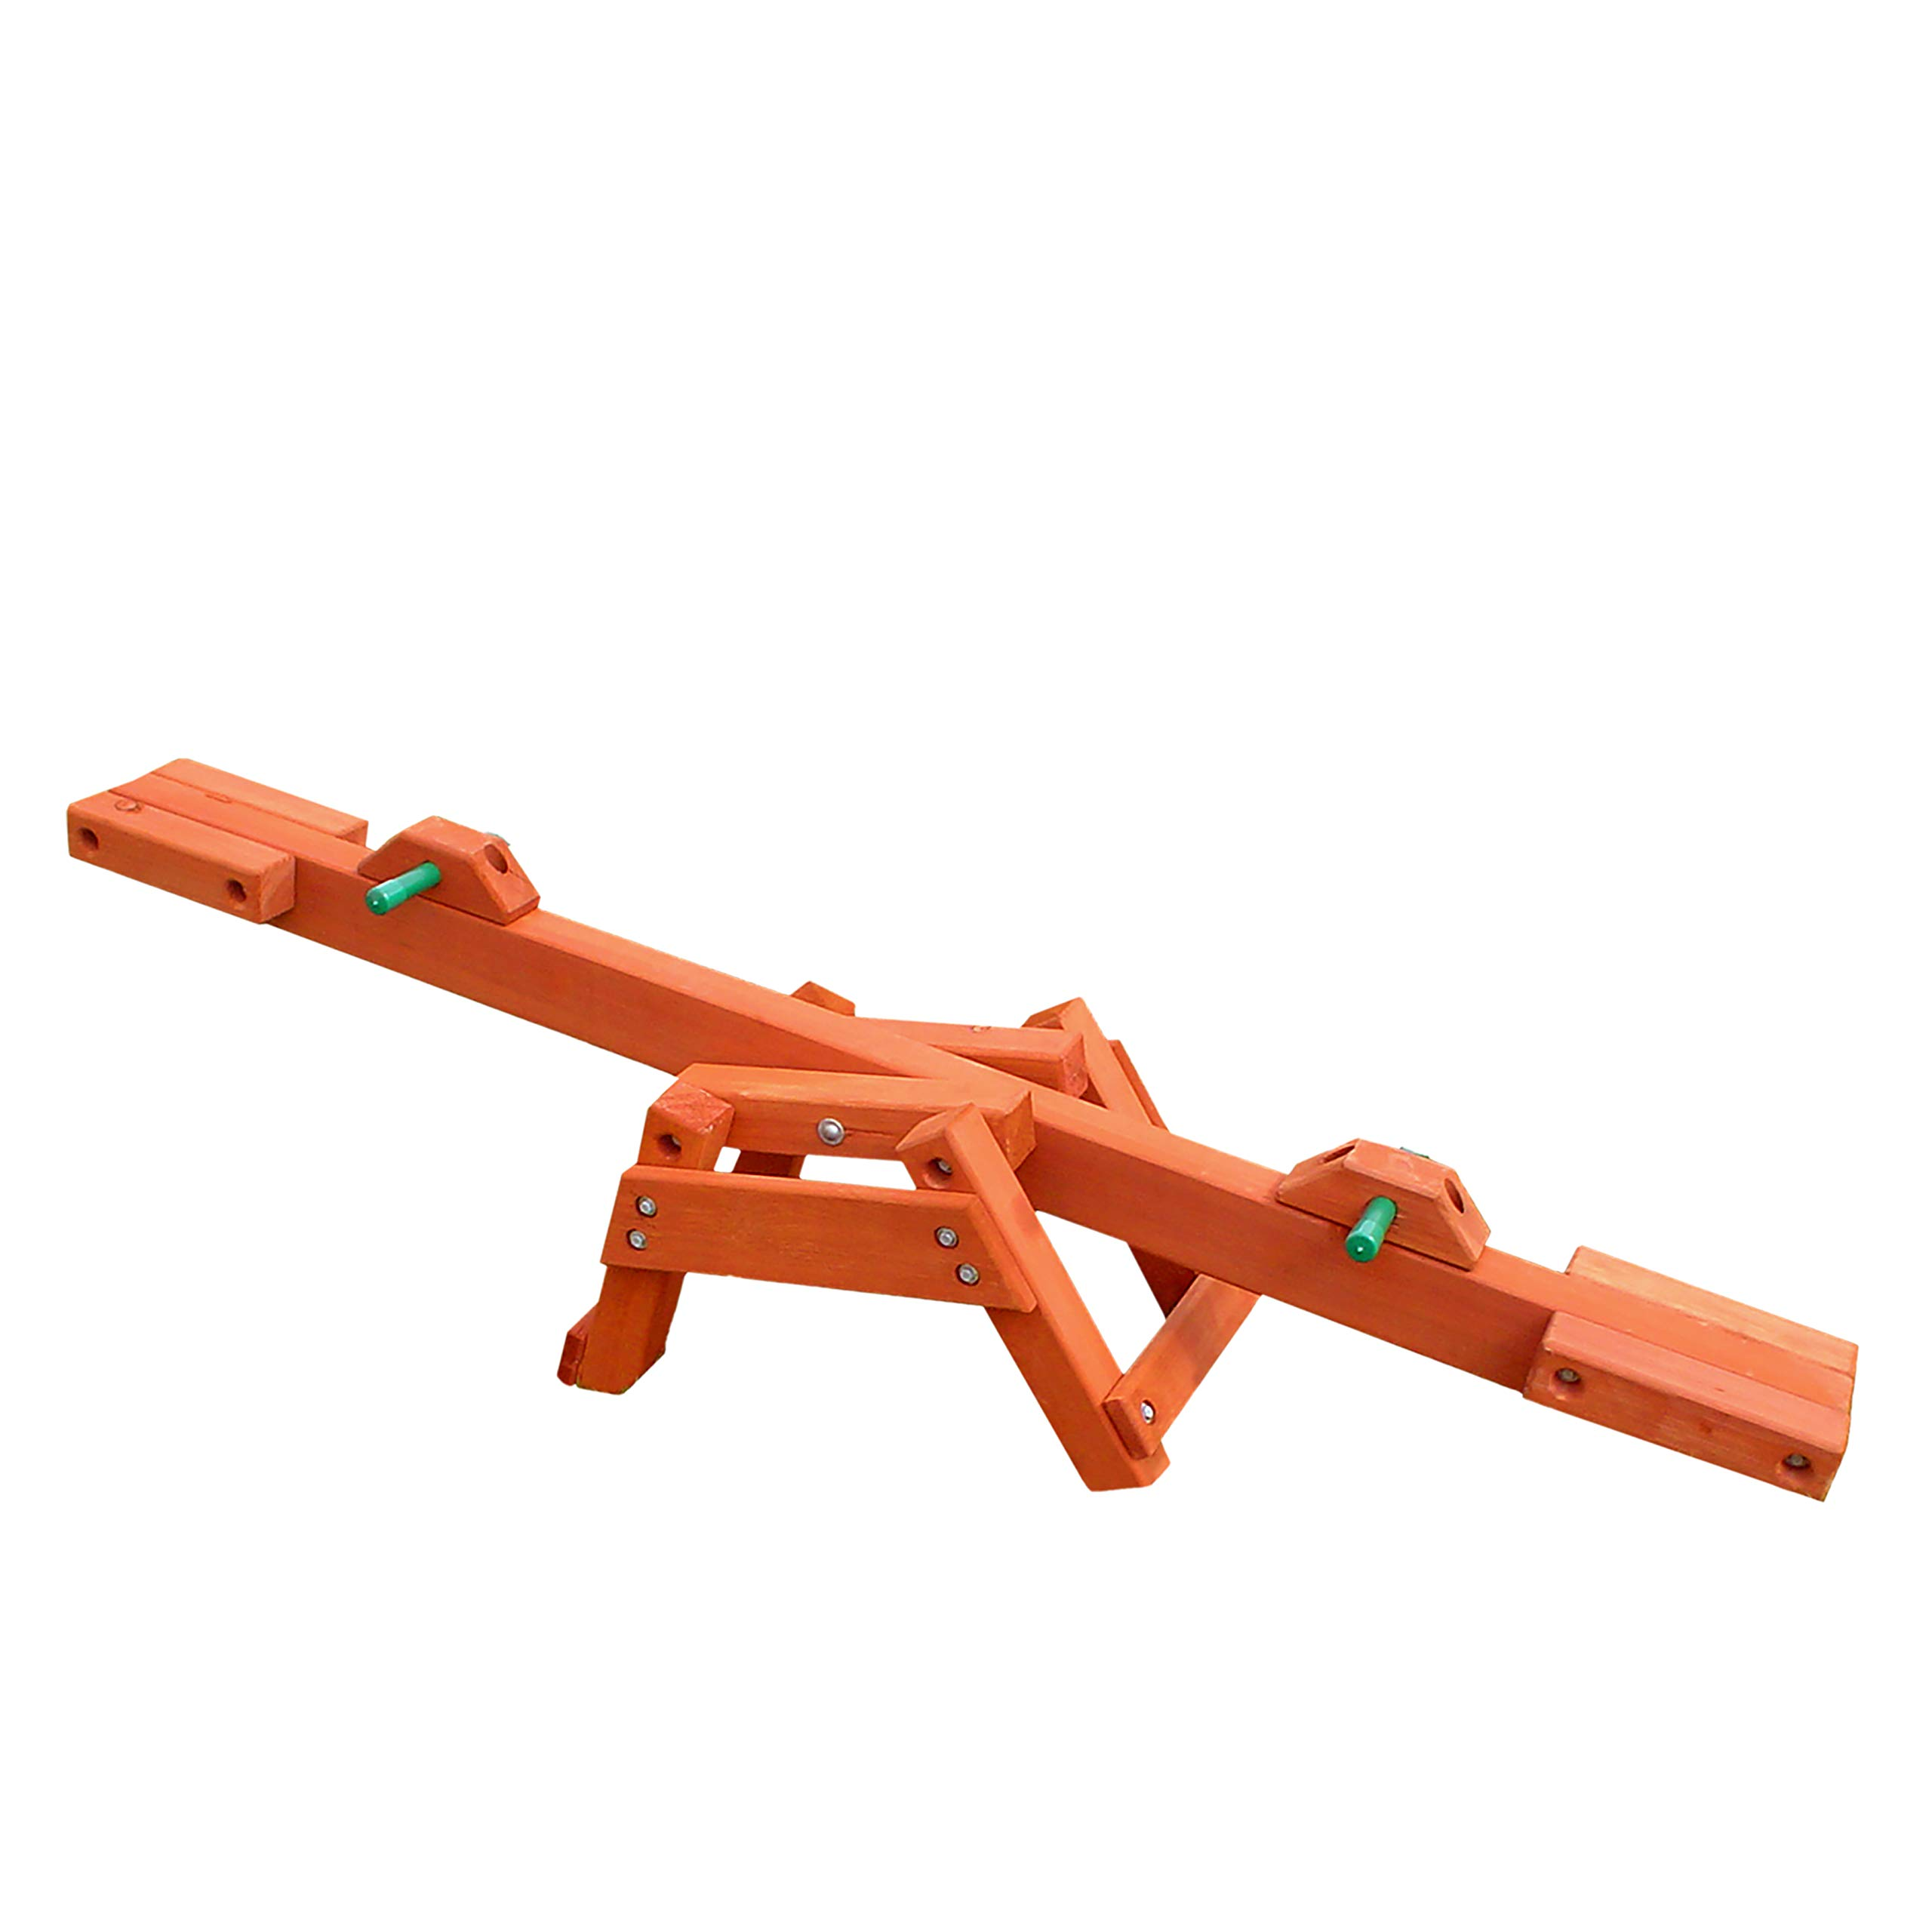 Gorilla Playsets See-Saw by Gorilla Playsets